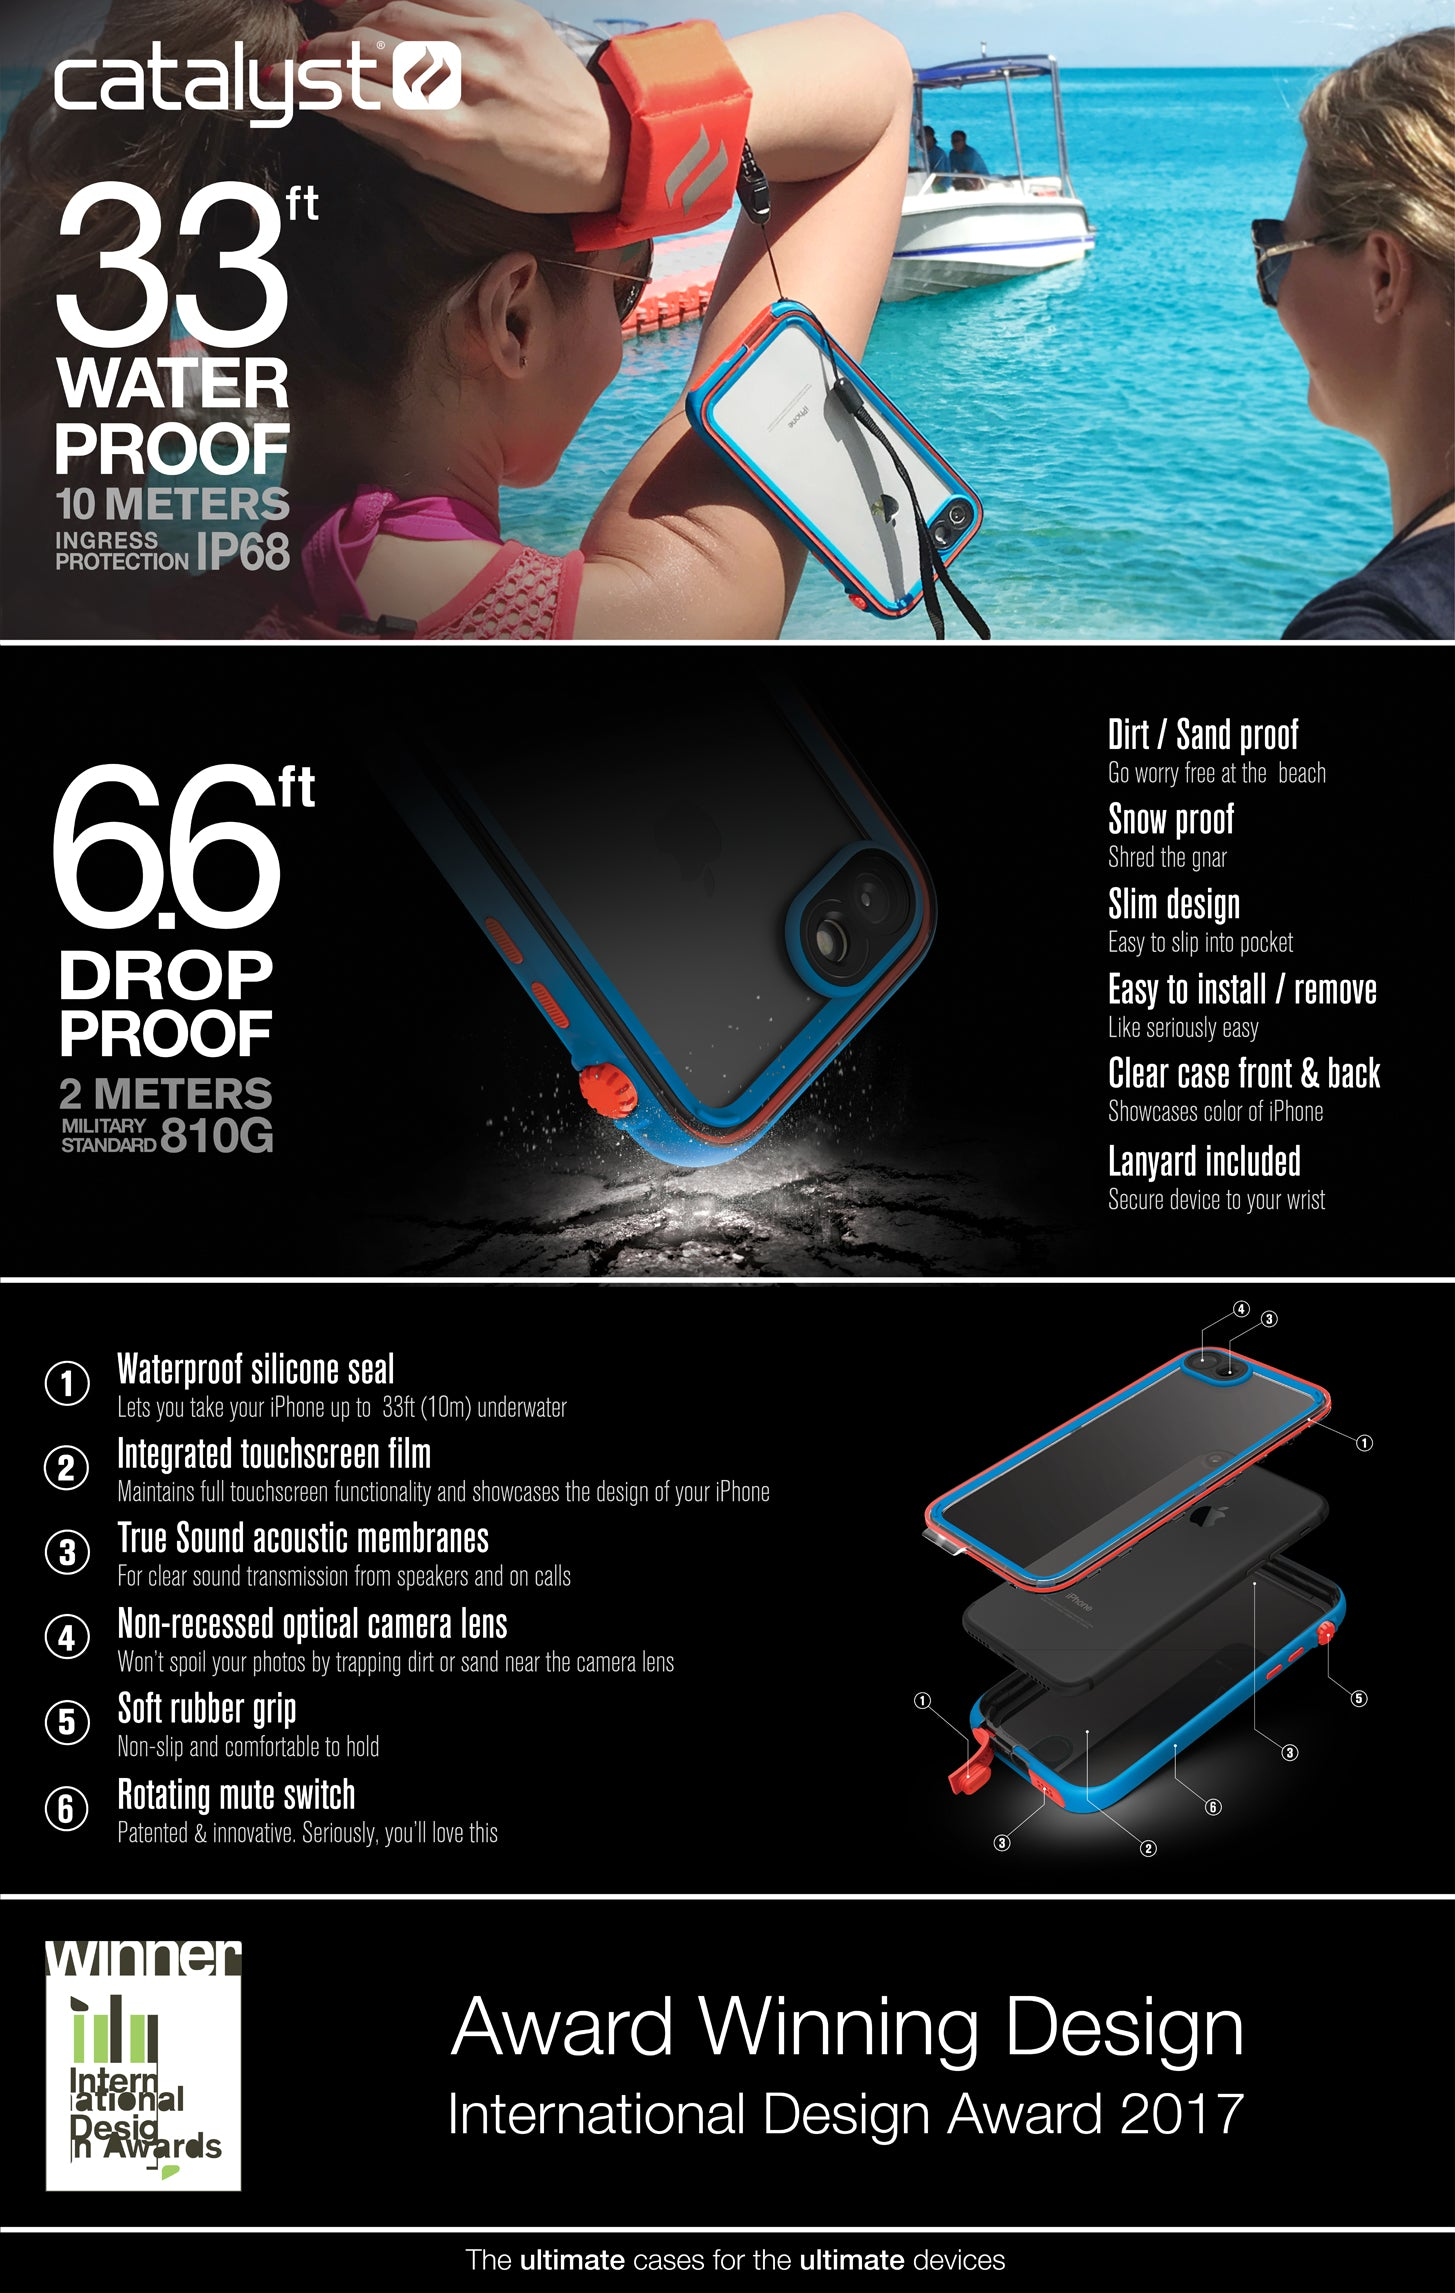 catalyst-waterproof-case-for-iphone-7